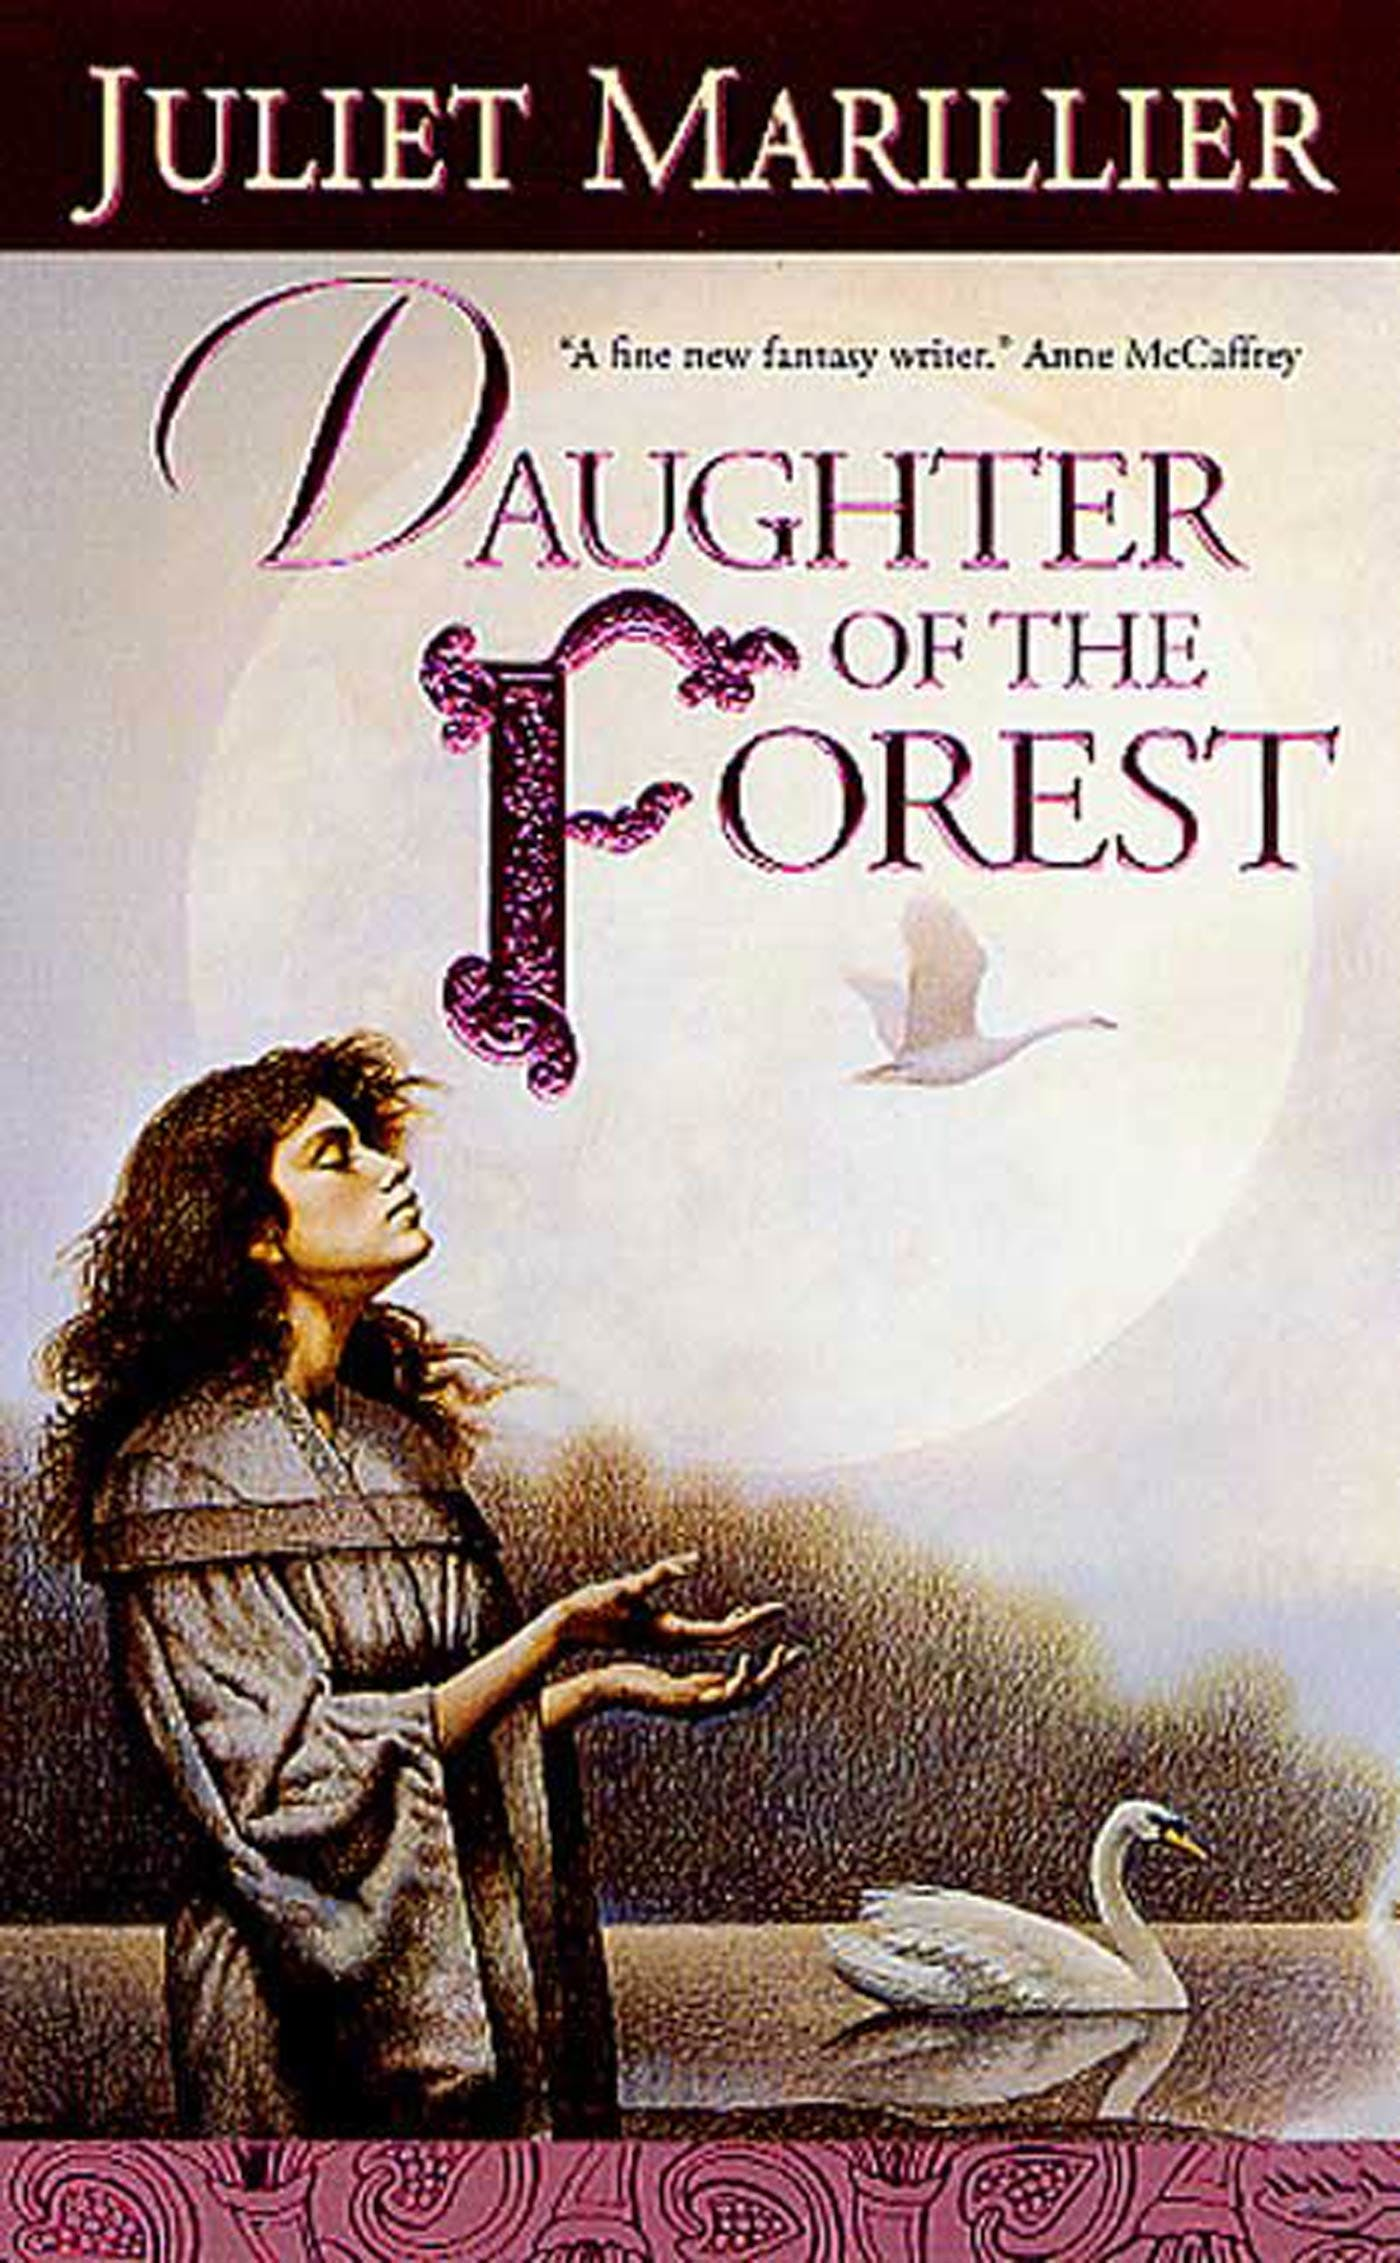 Image of Daughter of the Forest